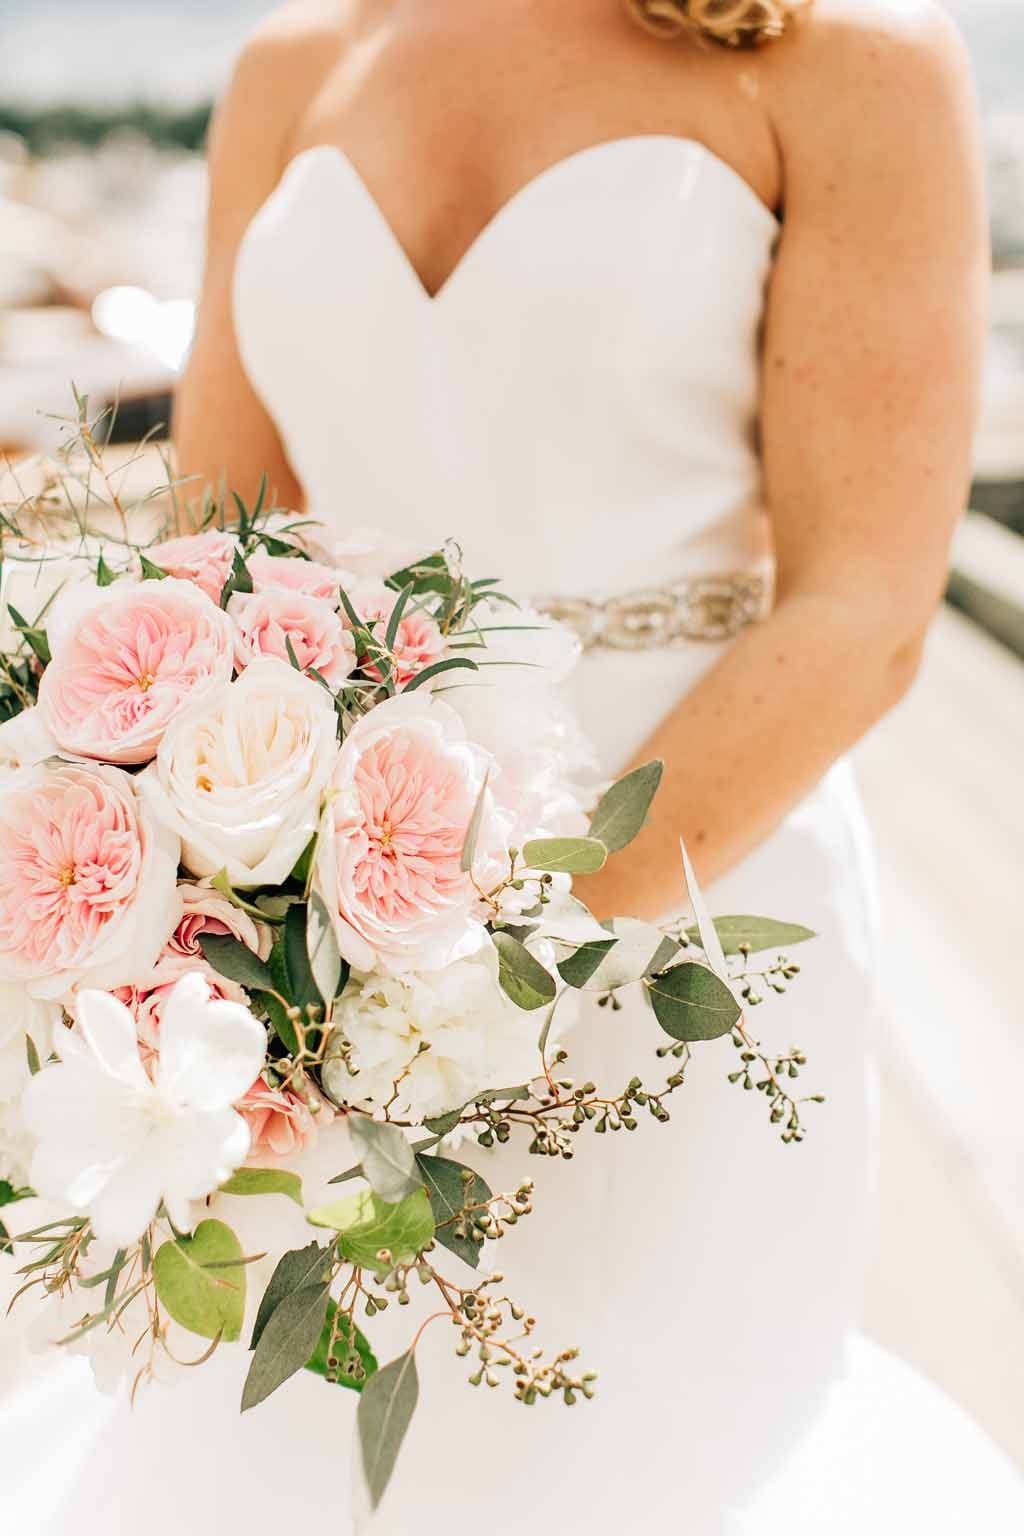 Bride holding her bridal bouquet of  Juliet garden roses, peonies, and trailing greenery vines for  her spring Lake Washington Wedding - designed by Flora Nova Design Seattle